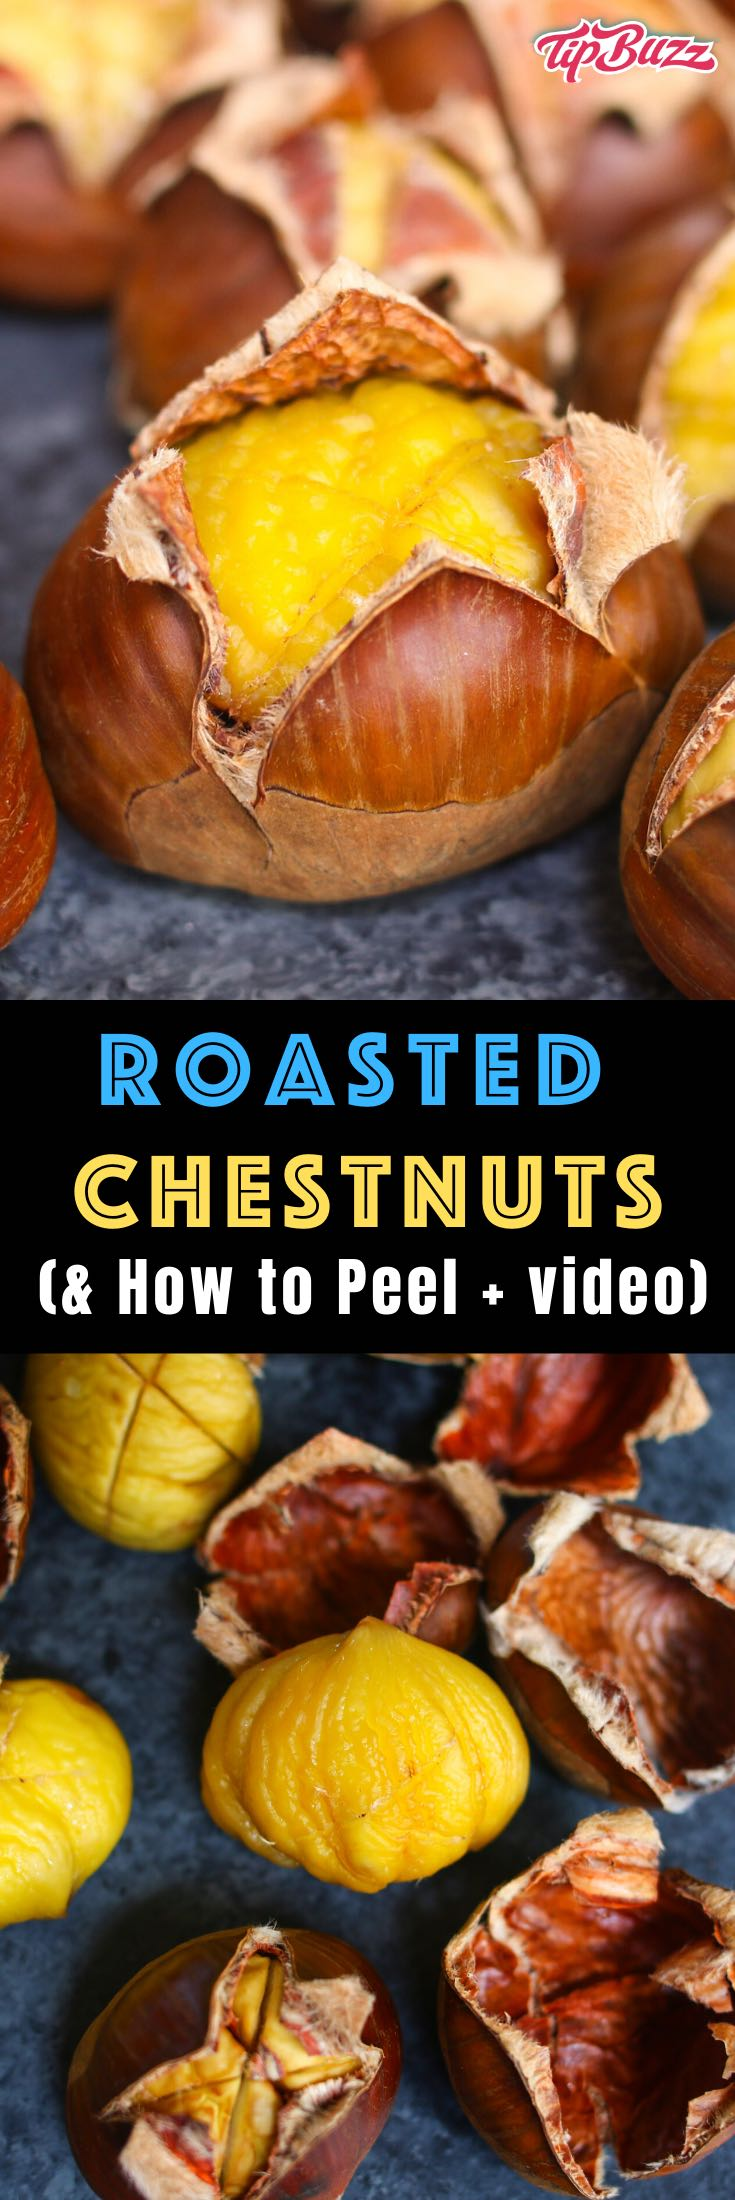 Roasted chestnuts are a healthy and hearty snack with a sweet, nutty flavor. Learn how to roast chestnuts in an oven, pan or on fire this holiday season. Scoring and soaking before roasting is the key to making this tree nut easier to eat. I'll also show you how to peel skins easily so you can enjoy delicious chestnuts!